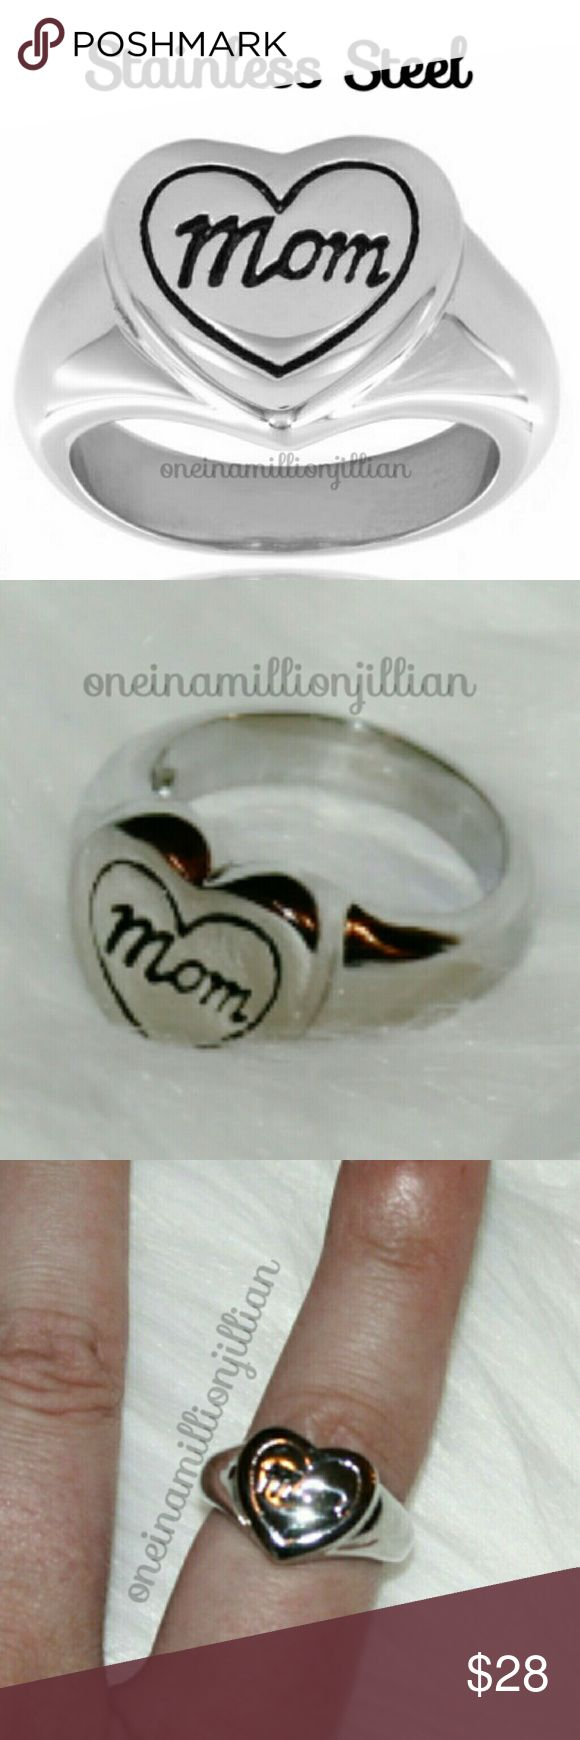 High Polished Stainless Steel Engraved Mom Ring New - Never Worn  Will come gift boxed  Size: 8  Let her know how much she means to you with this stainless steel heart ring. A laser-cut heart is engraved with a black 'Mom' message & border to form this elegant & thoughtful piece   ◇ Measures approx 13mm wide x 2mm thick ◇ Band measures 2mm wide  Stainless steel is corrosion resistant! Won't rust, tarnish or oxidize & turn your finger green. It looks AMAZING, is highly affordable & can…